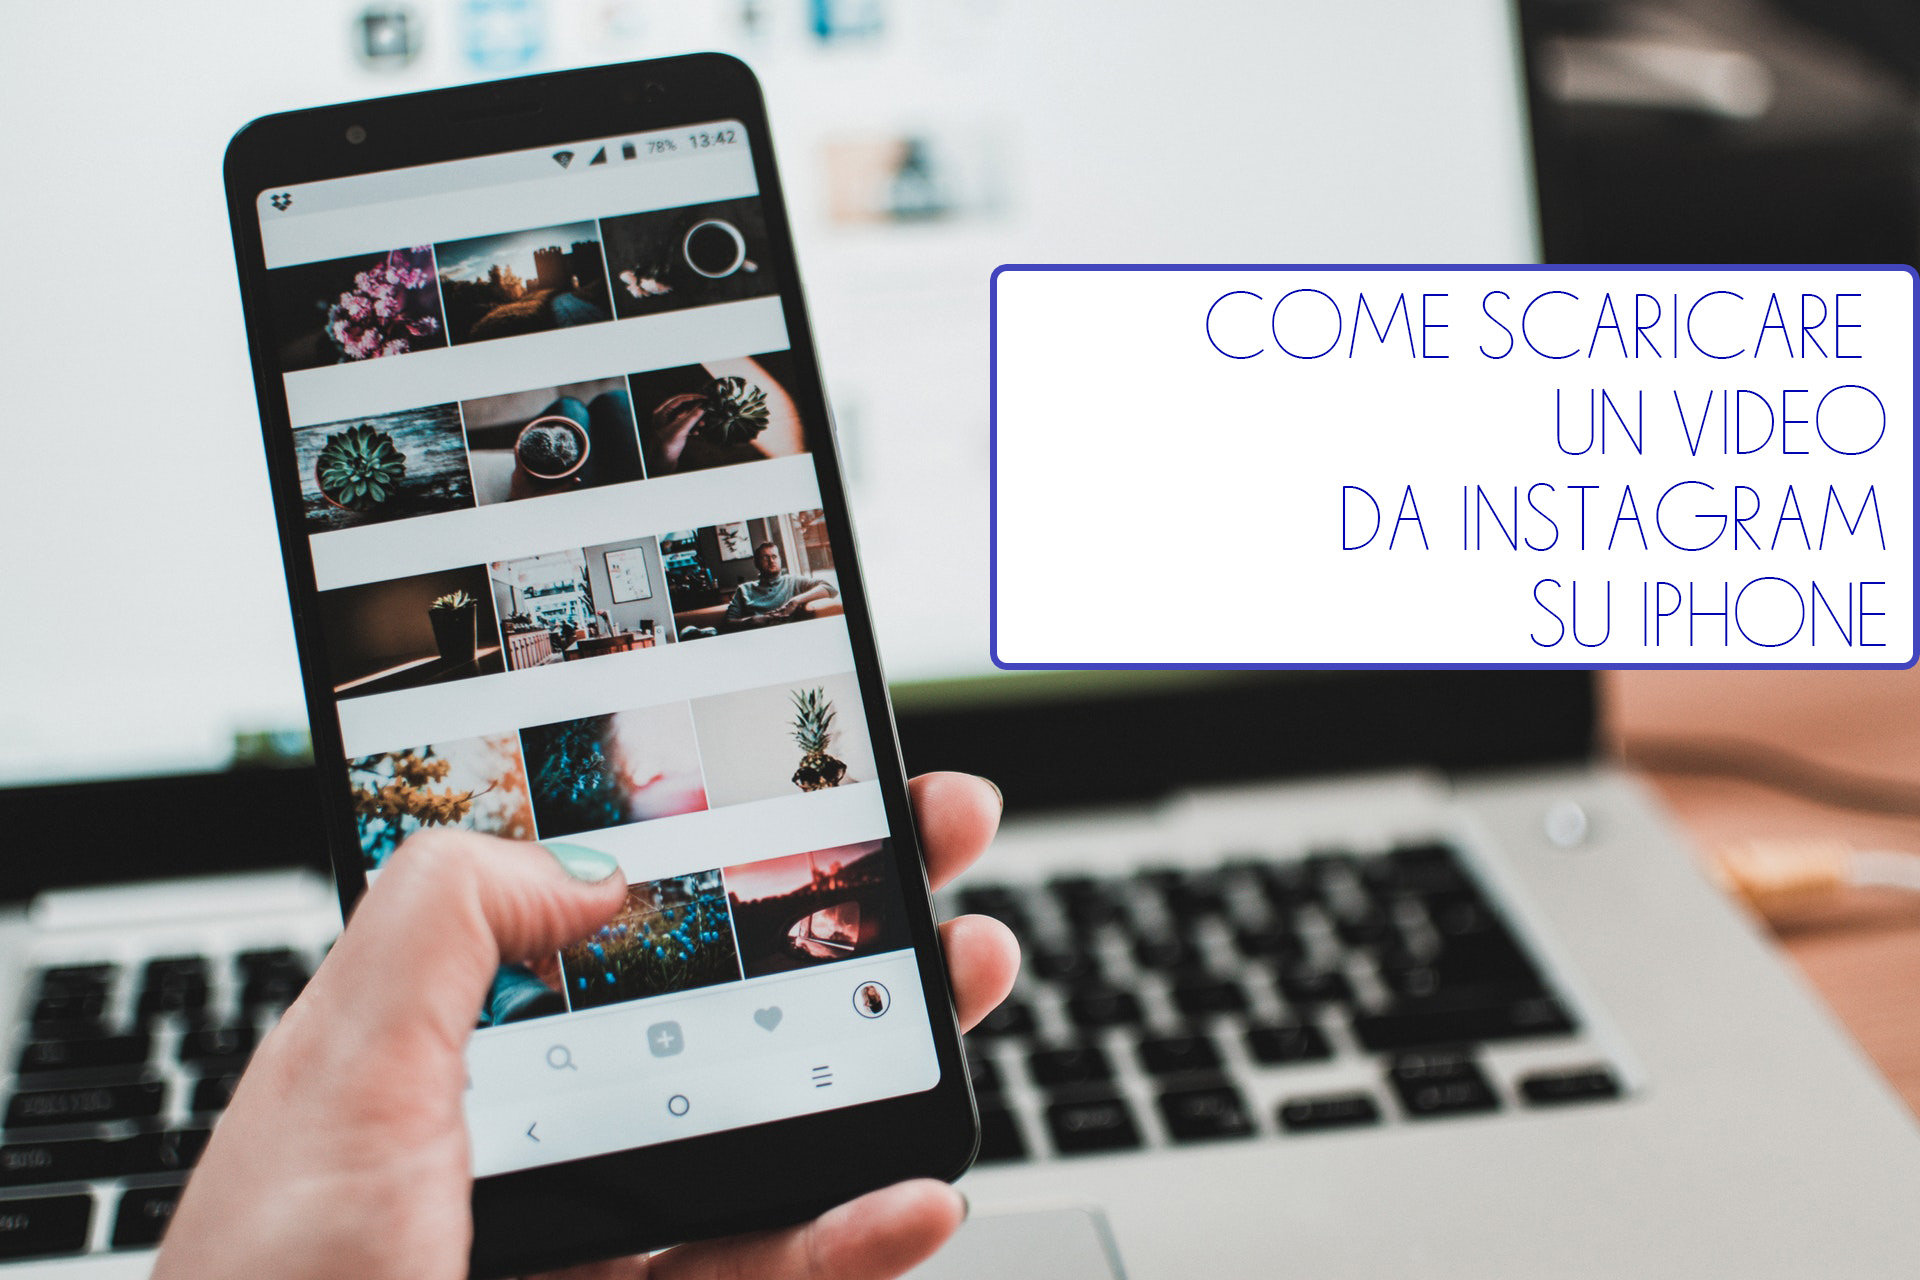 Come scaricare un video da Instagram su iPhone